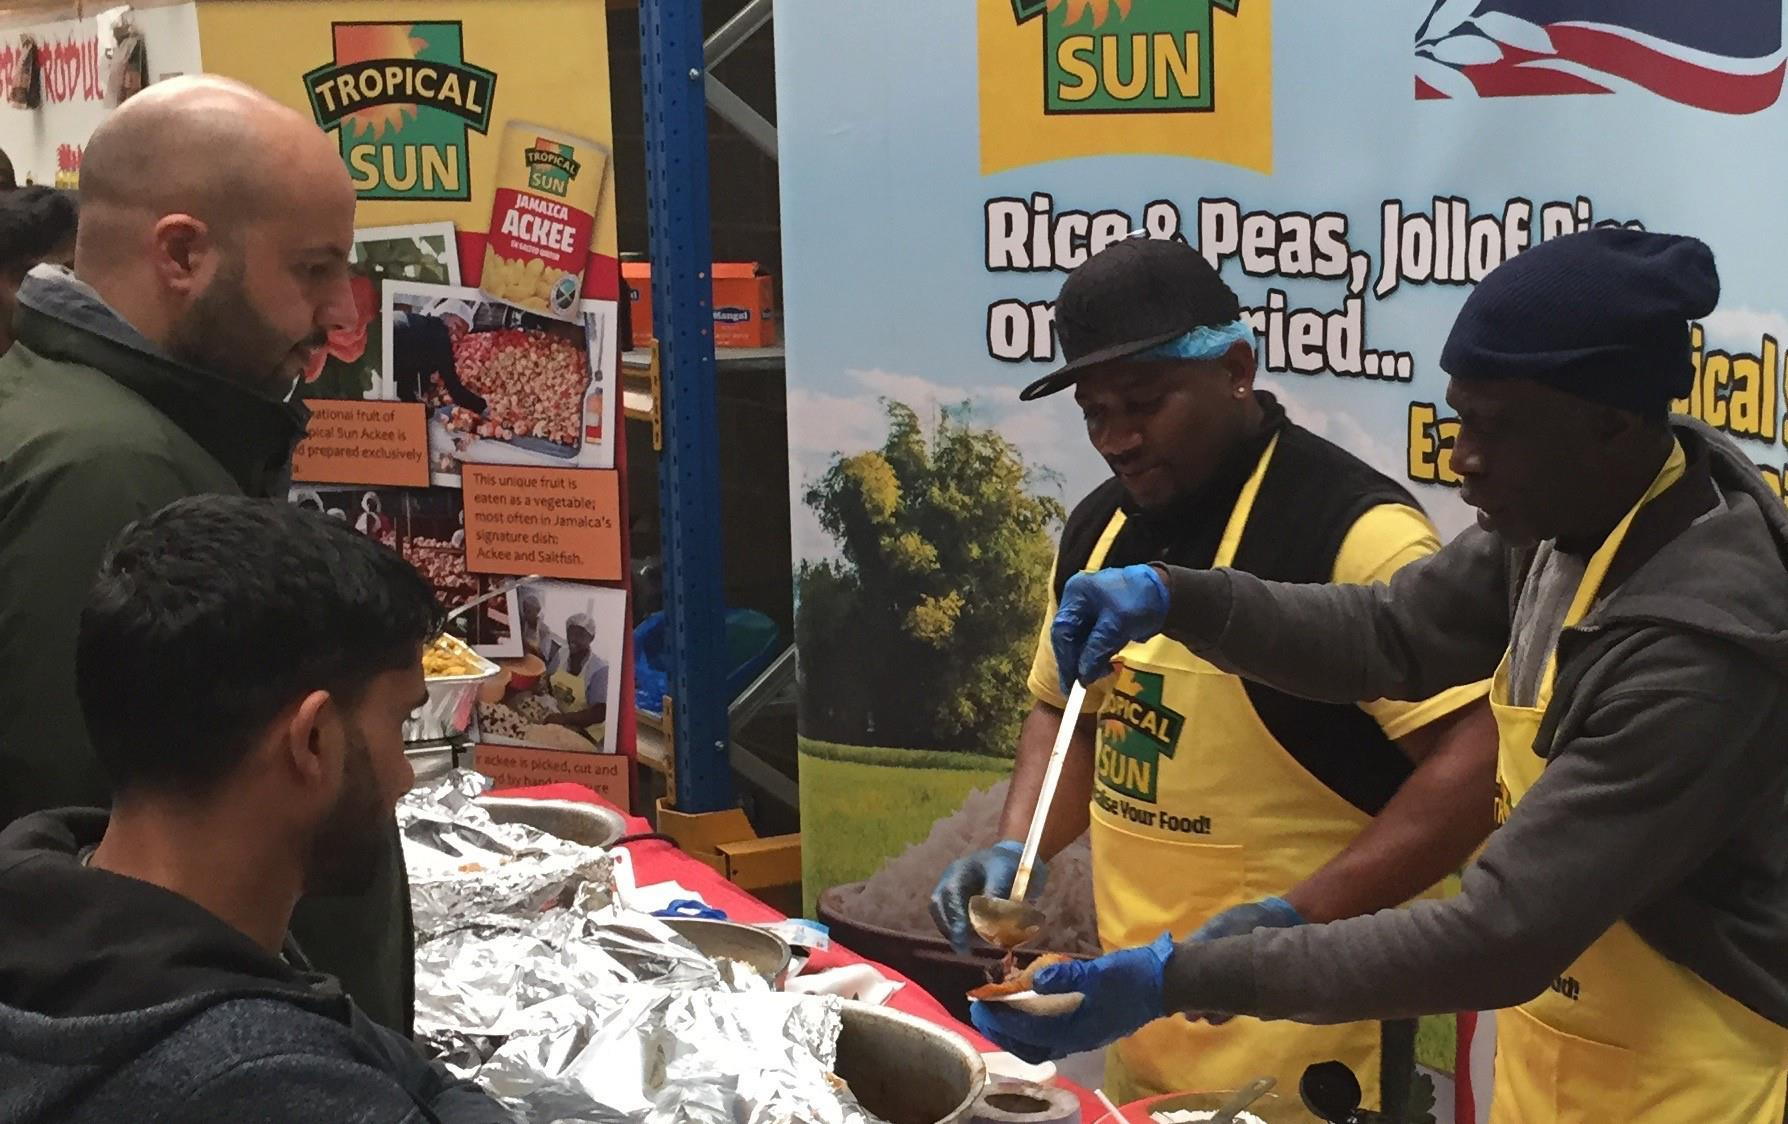 People gather at a buffet table filled with colorful dishes being served by two black men wearing yellow aprons standing in front of a USA Rice & Tropical Sun banner